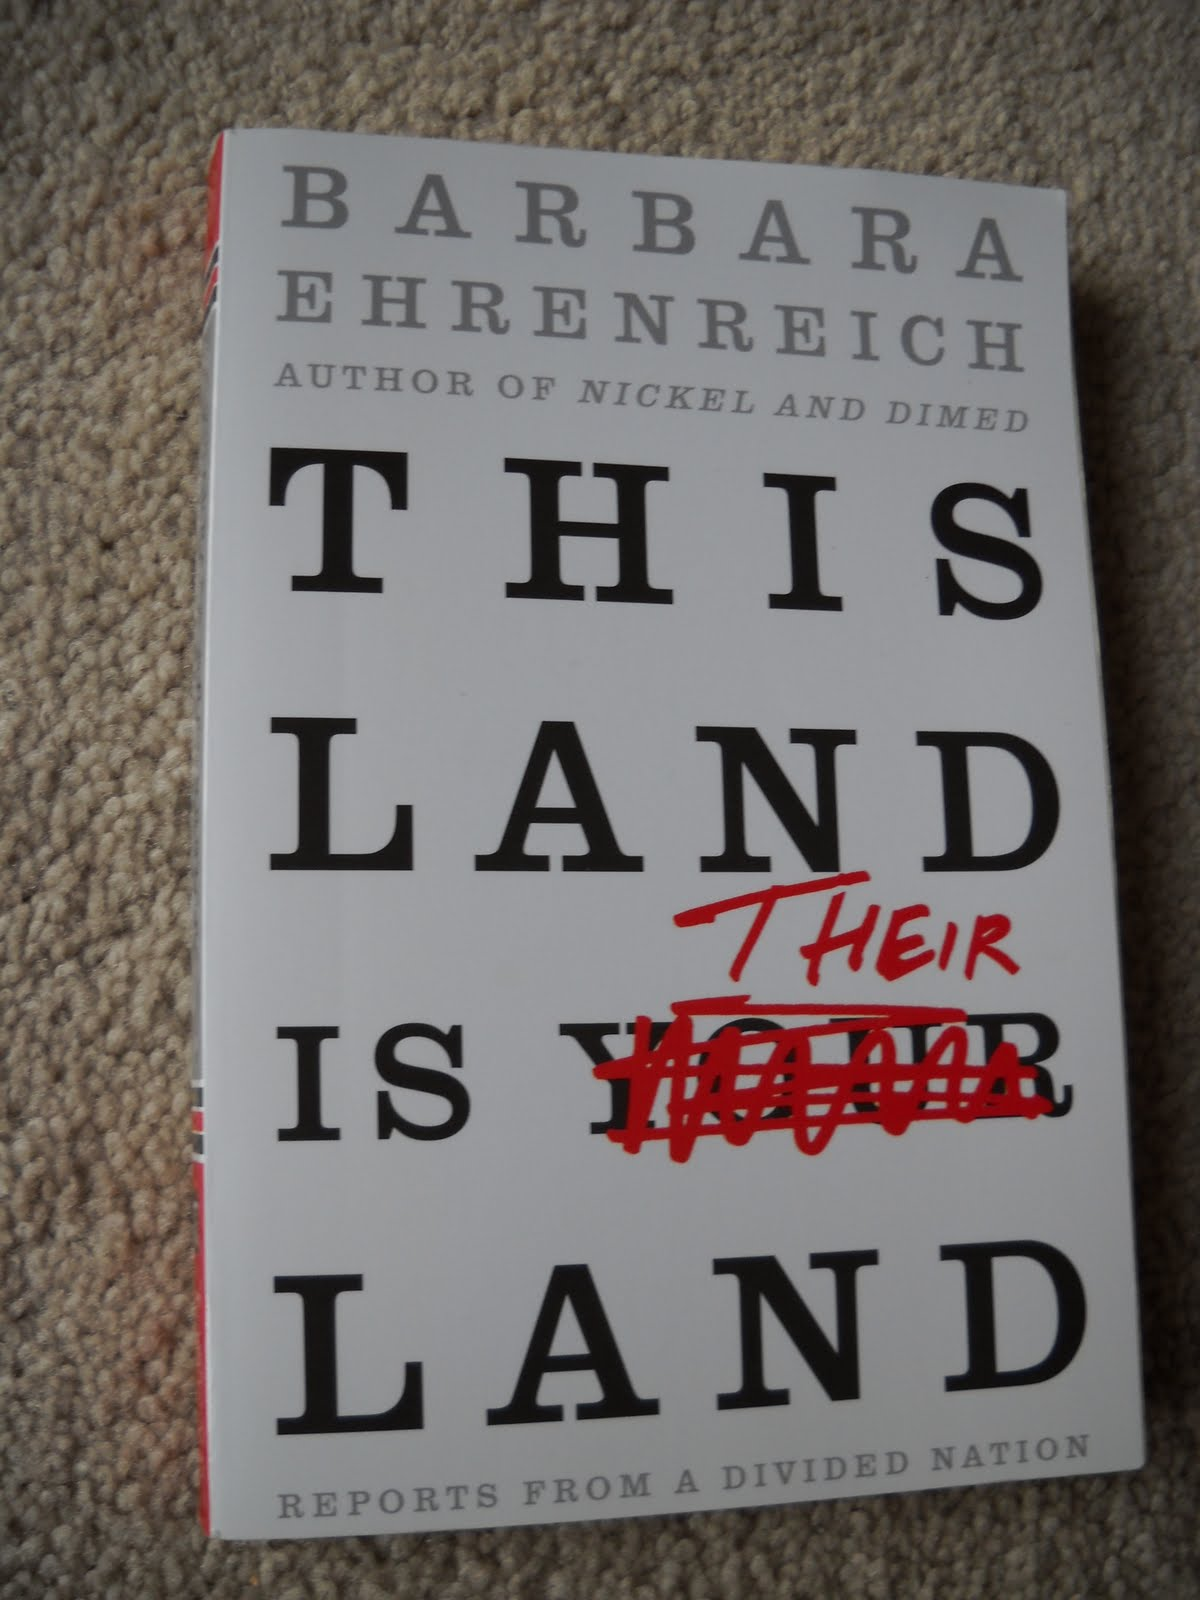 this land is their land by barbara ehrenreich essays Social critic barbara ehrenreich has written about living as a low-wage worker (nickel and dimed) and looking for a white-collar job (bait and switch)she spoke recently with time's jeremy caplan about her new book, this land is your land: reports from a divided nation, a collection of emotionally charged essays.